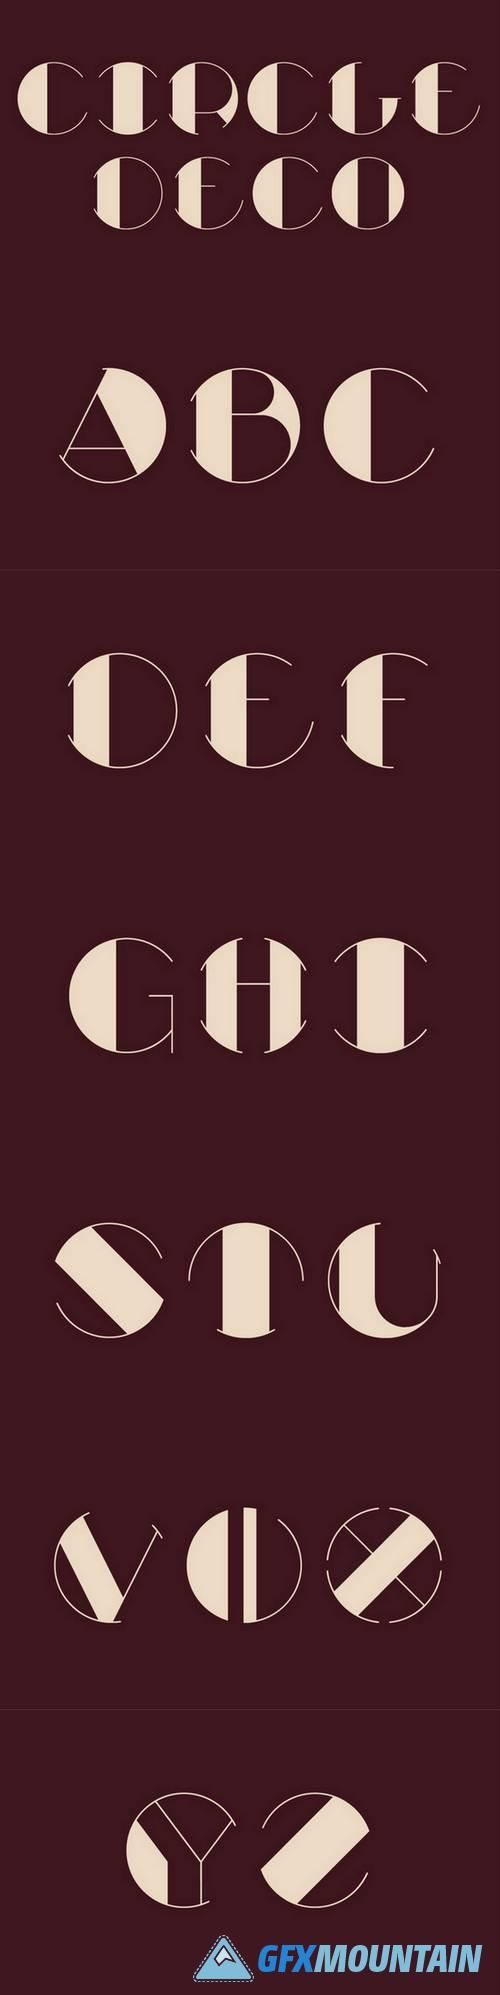 Circle Deco free font is an Art Deco typeface